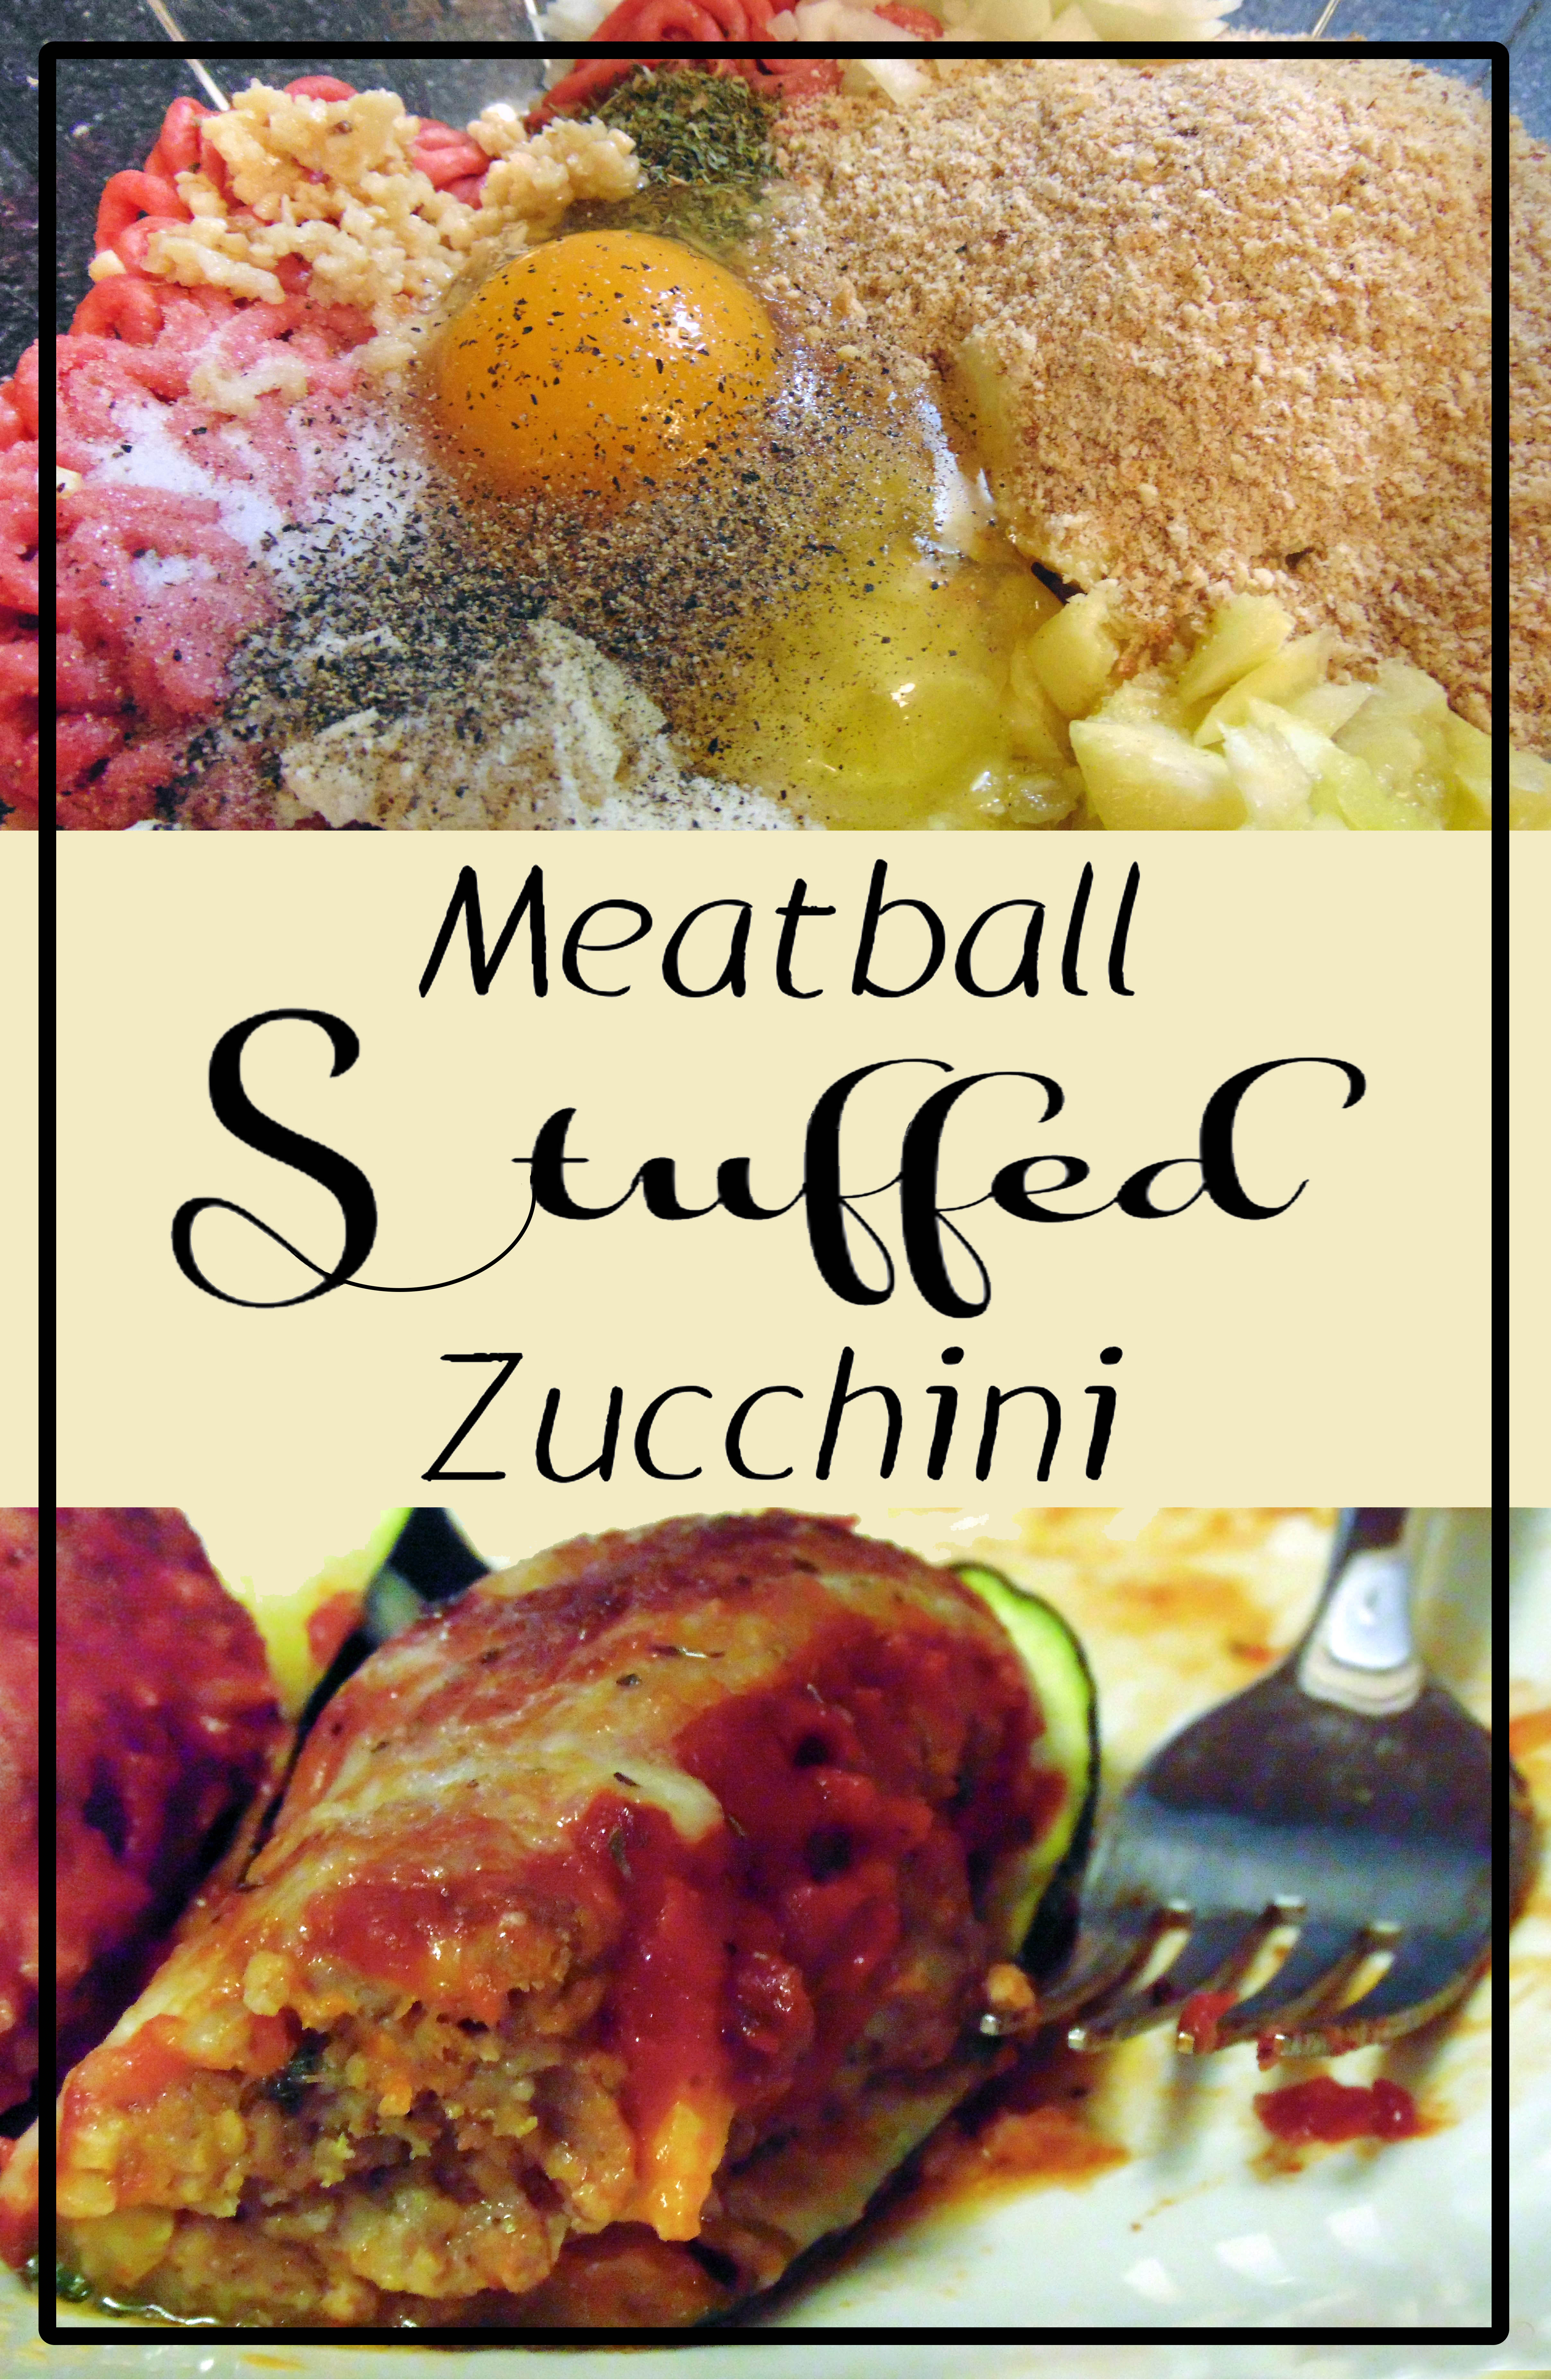 meatball stuffed zucchini healthy gluten free low carb no carb nsng paleo whole 30